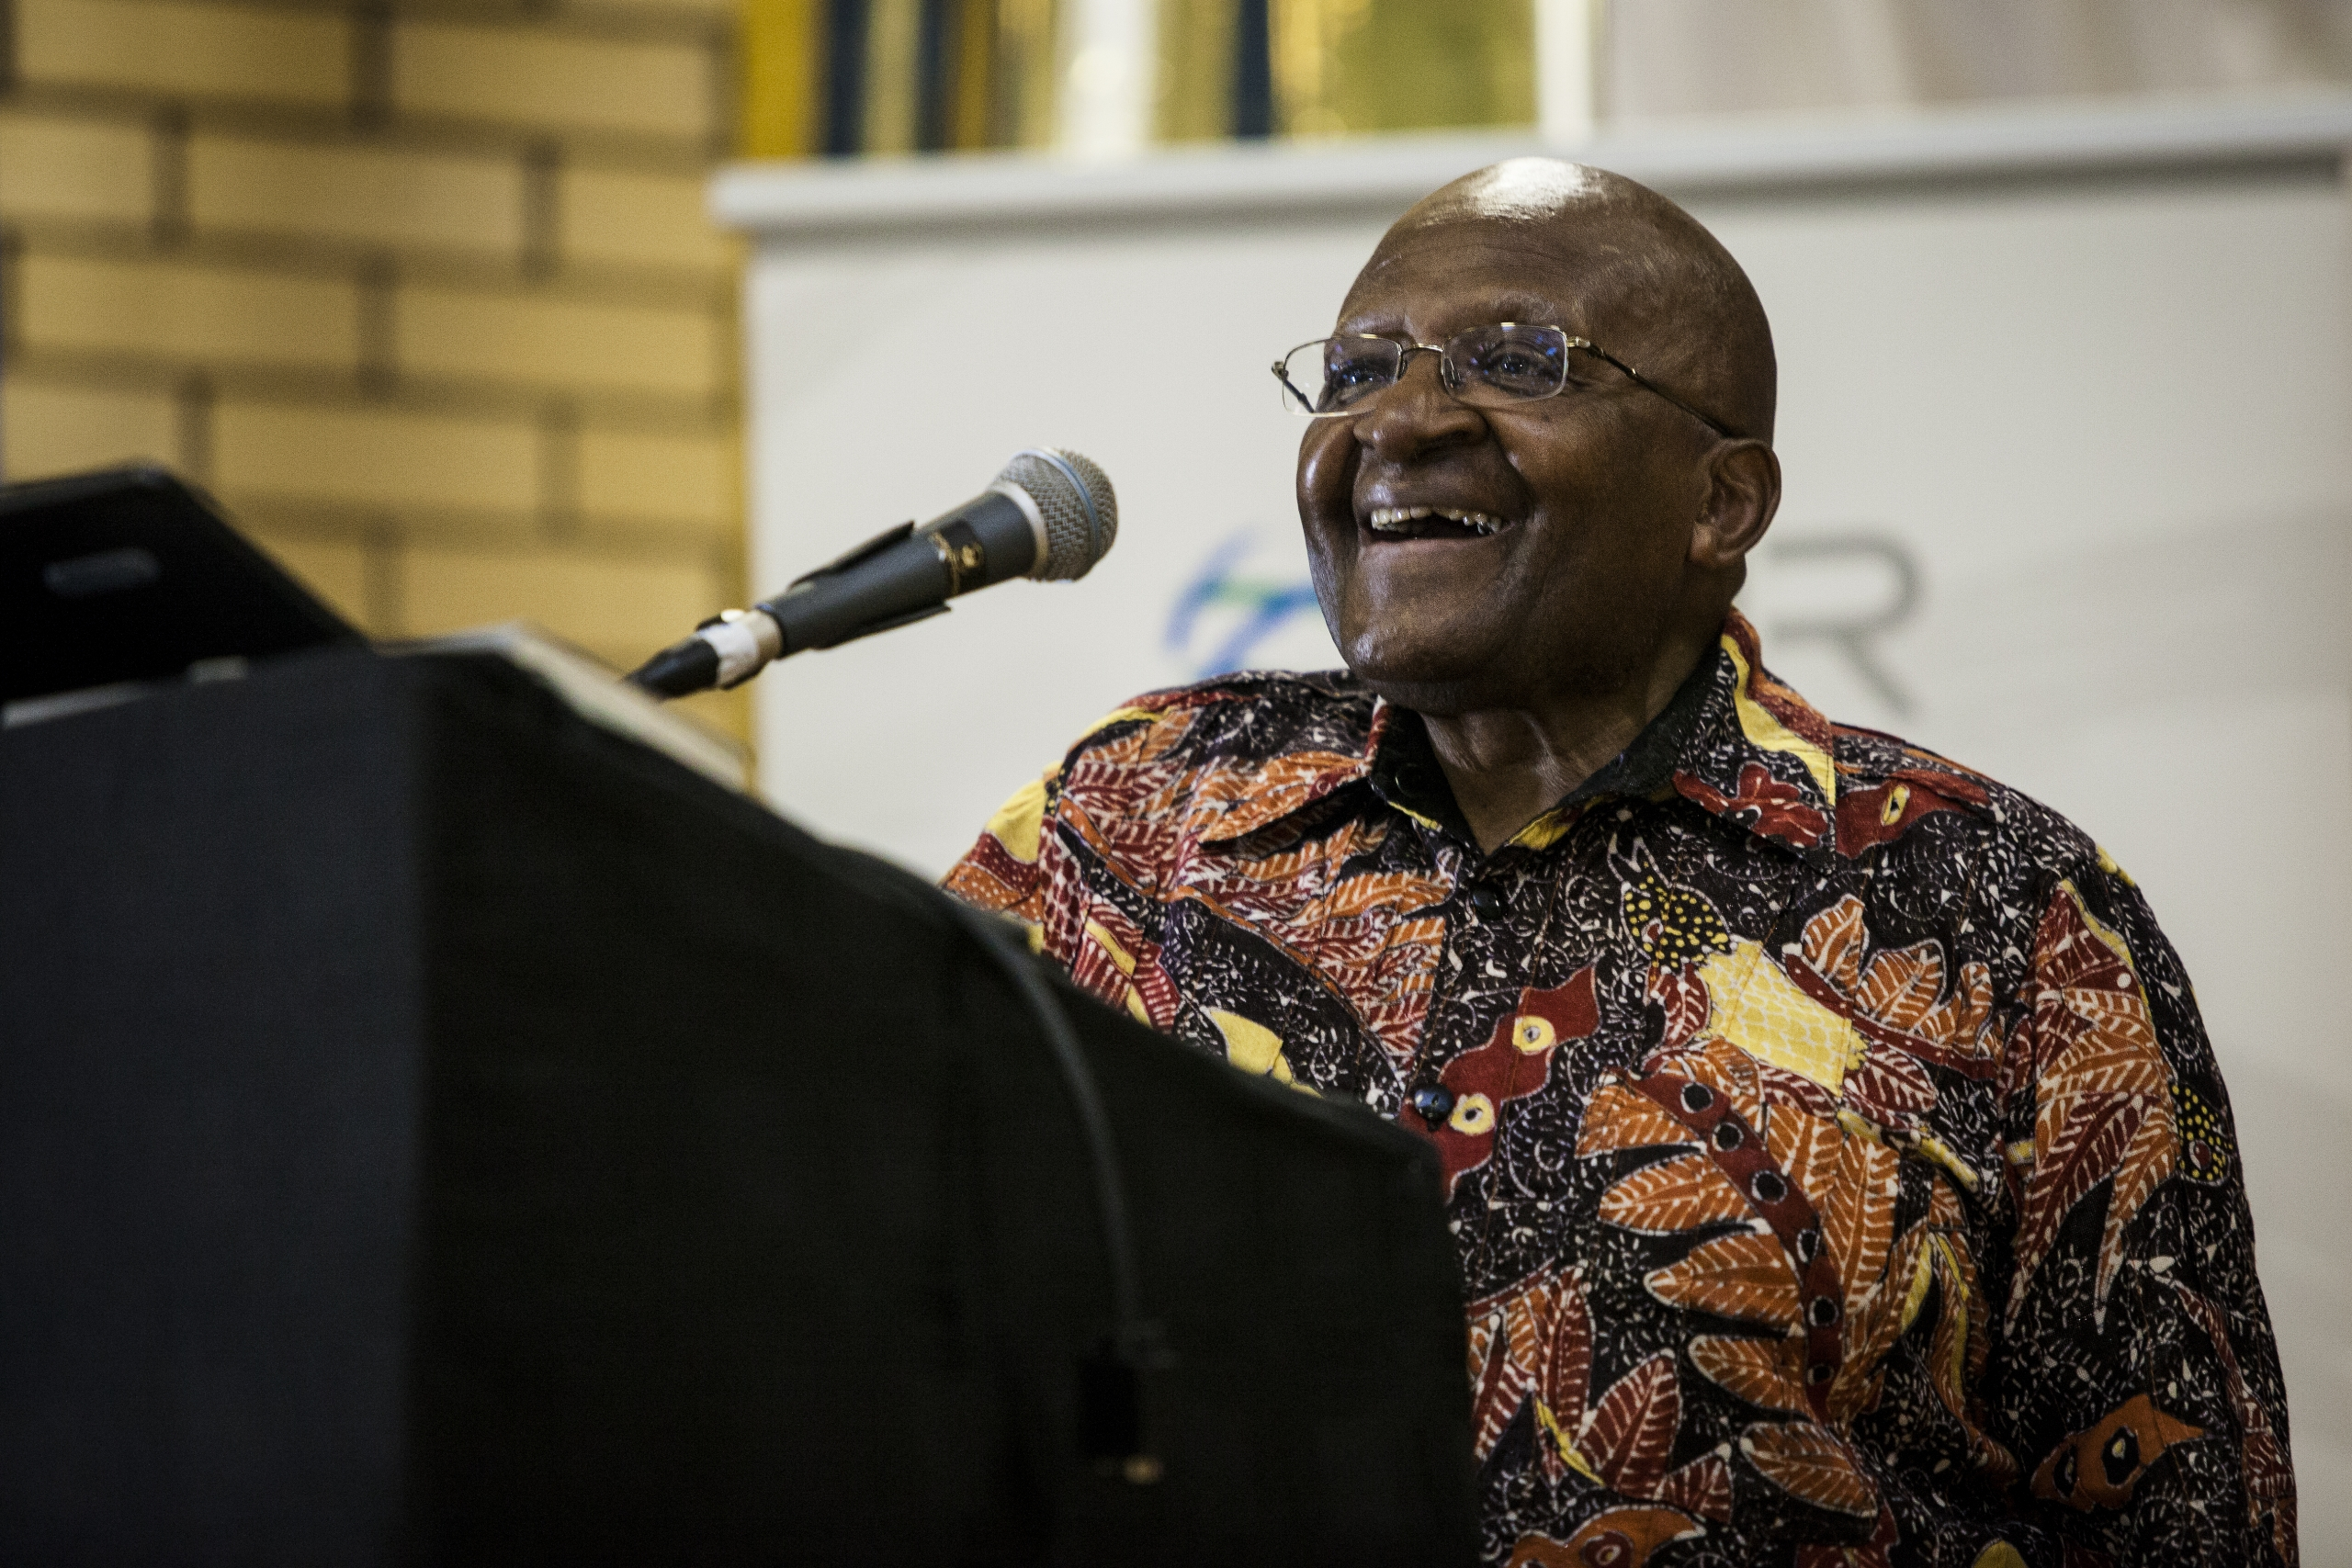 THE IJR STAFF WISHES ARCHBISHOP DESMOND TUTU A SPEEDY RECOVERY